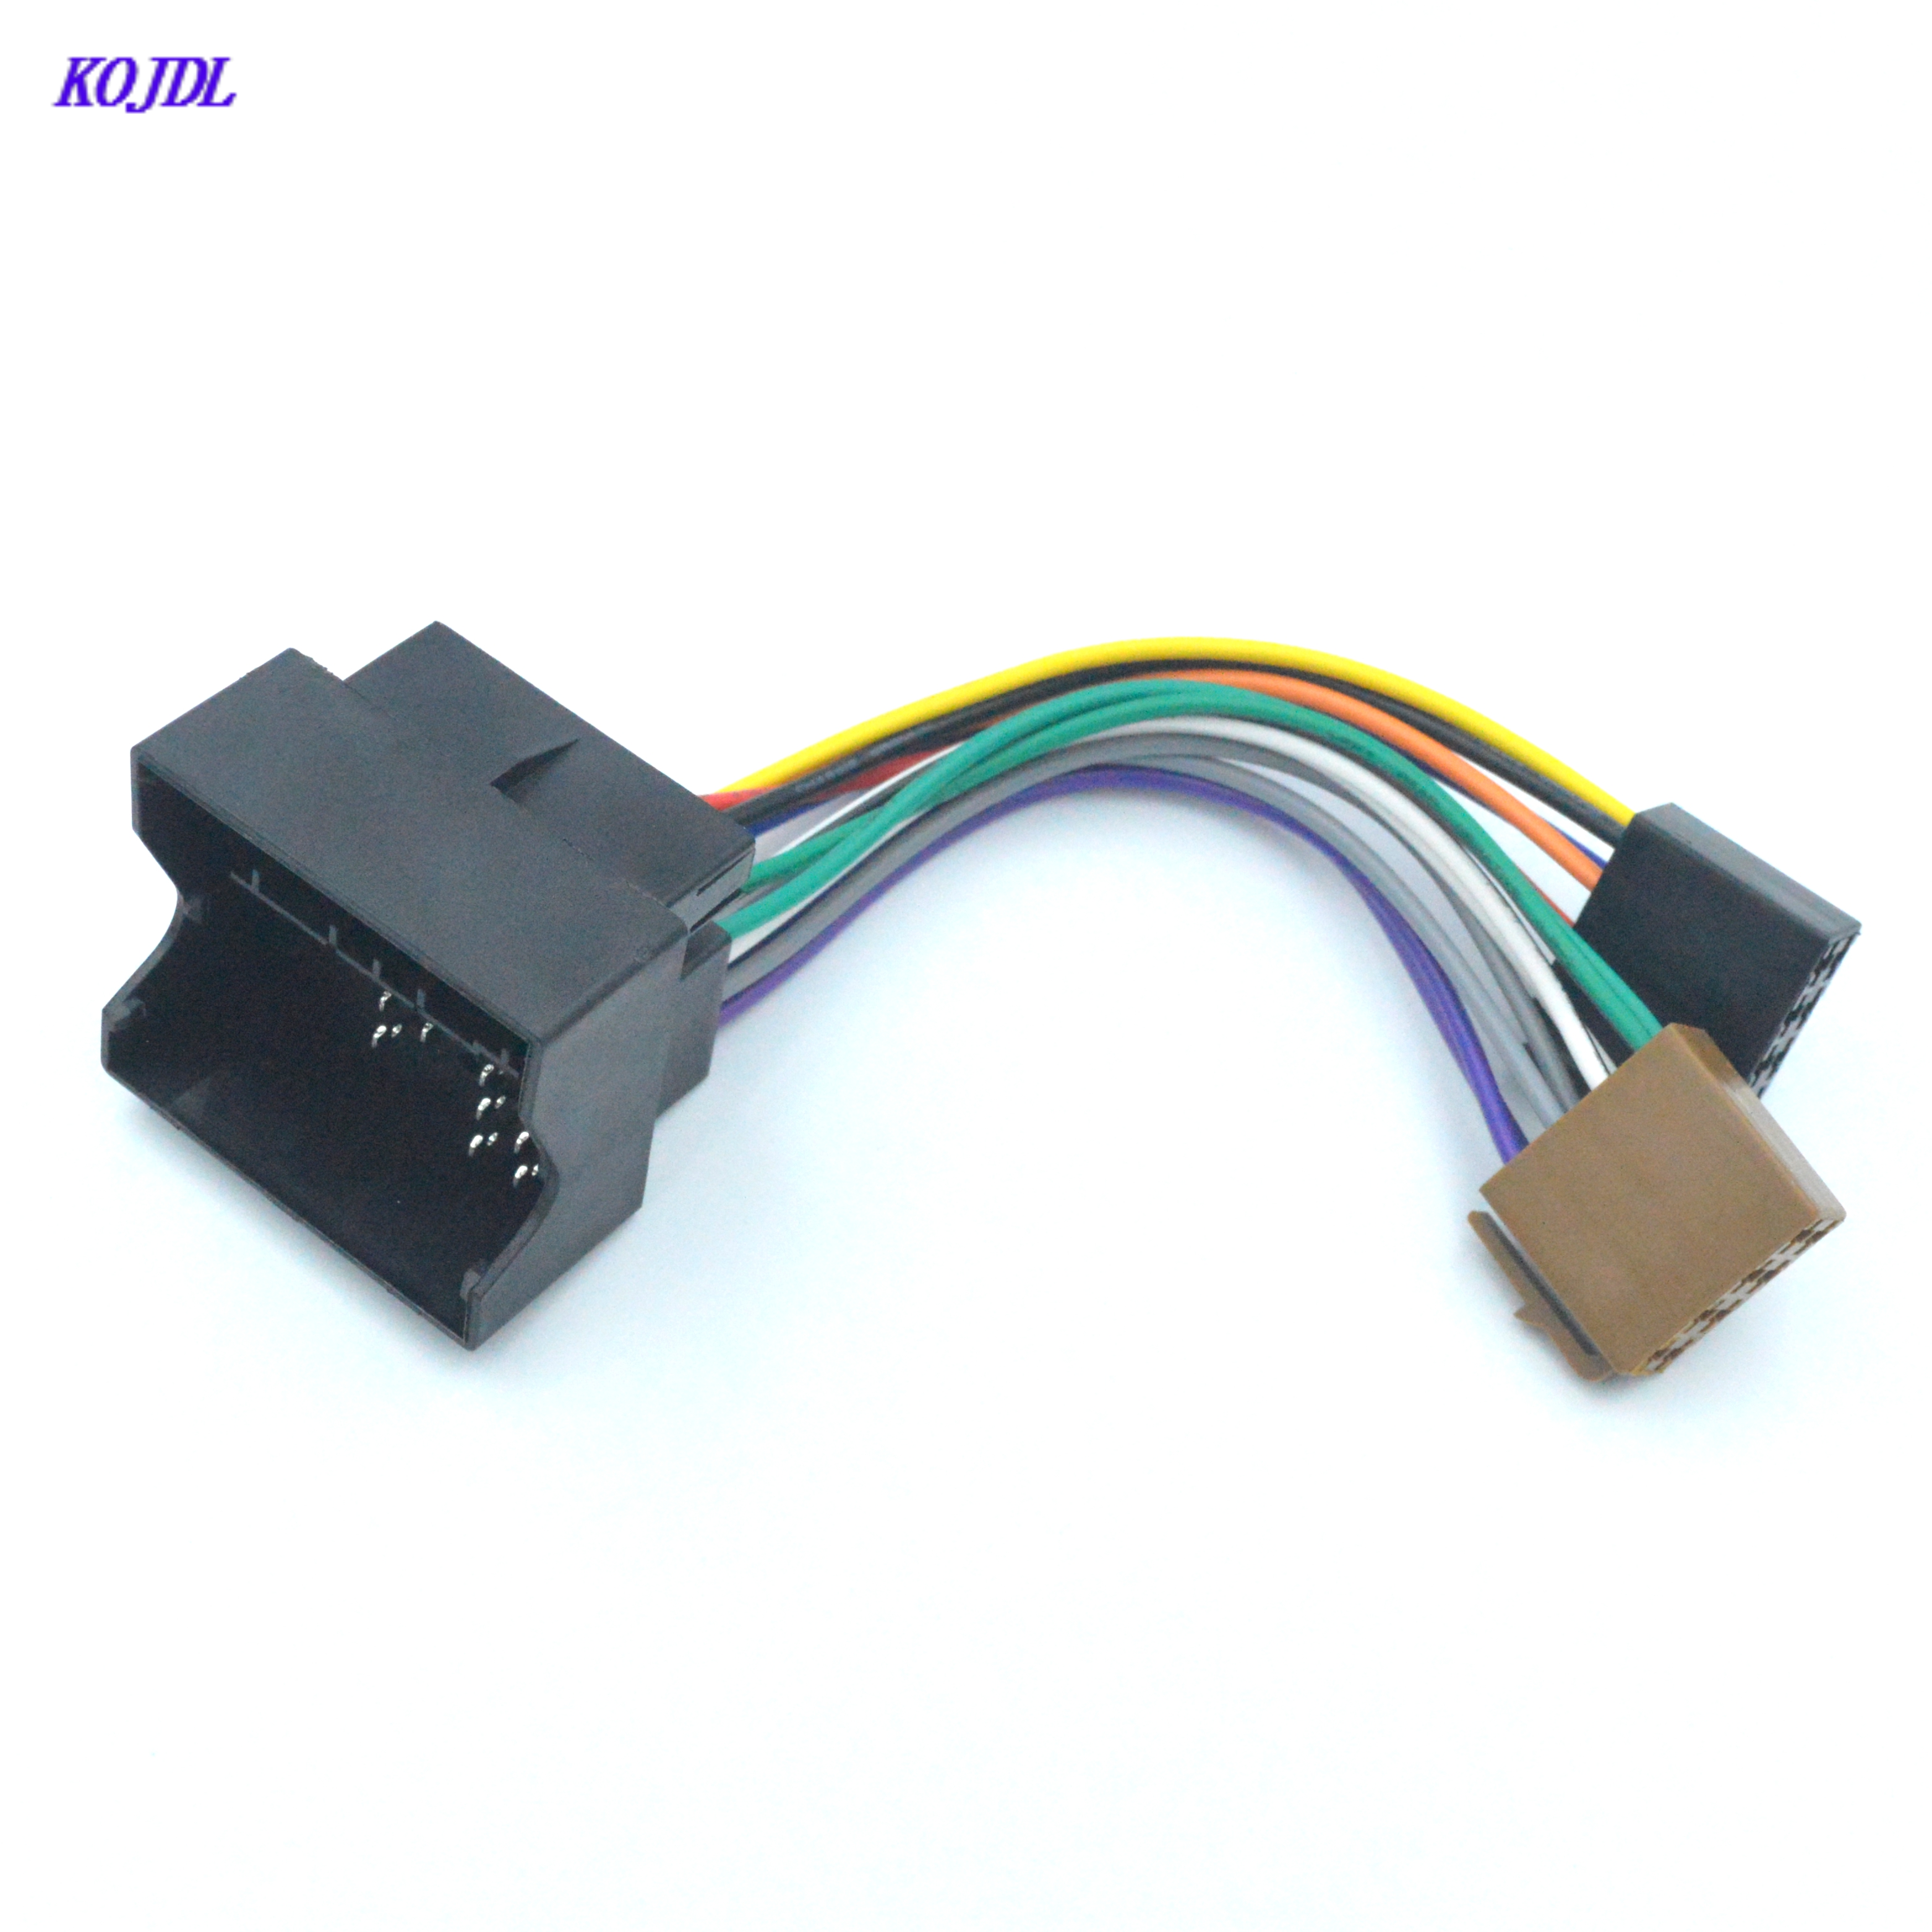 Car ISO Stereo Radio Wiring harness Adapter for Volkswagen Golf Passat Bora Fox Tiguan For Skoda Audi Plug iso Cable connector